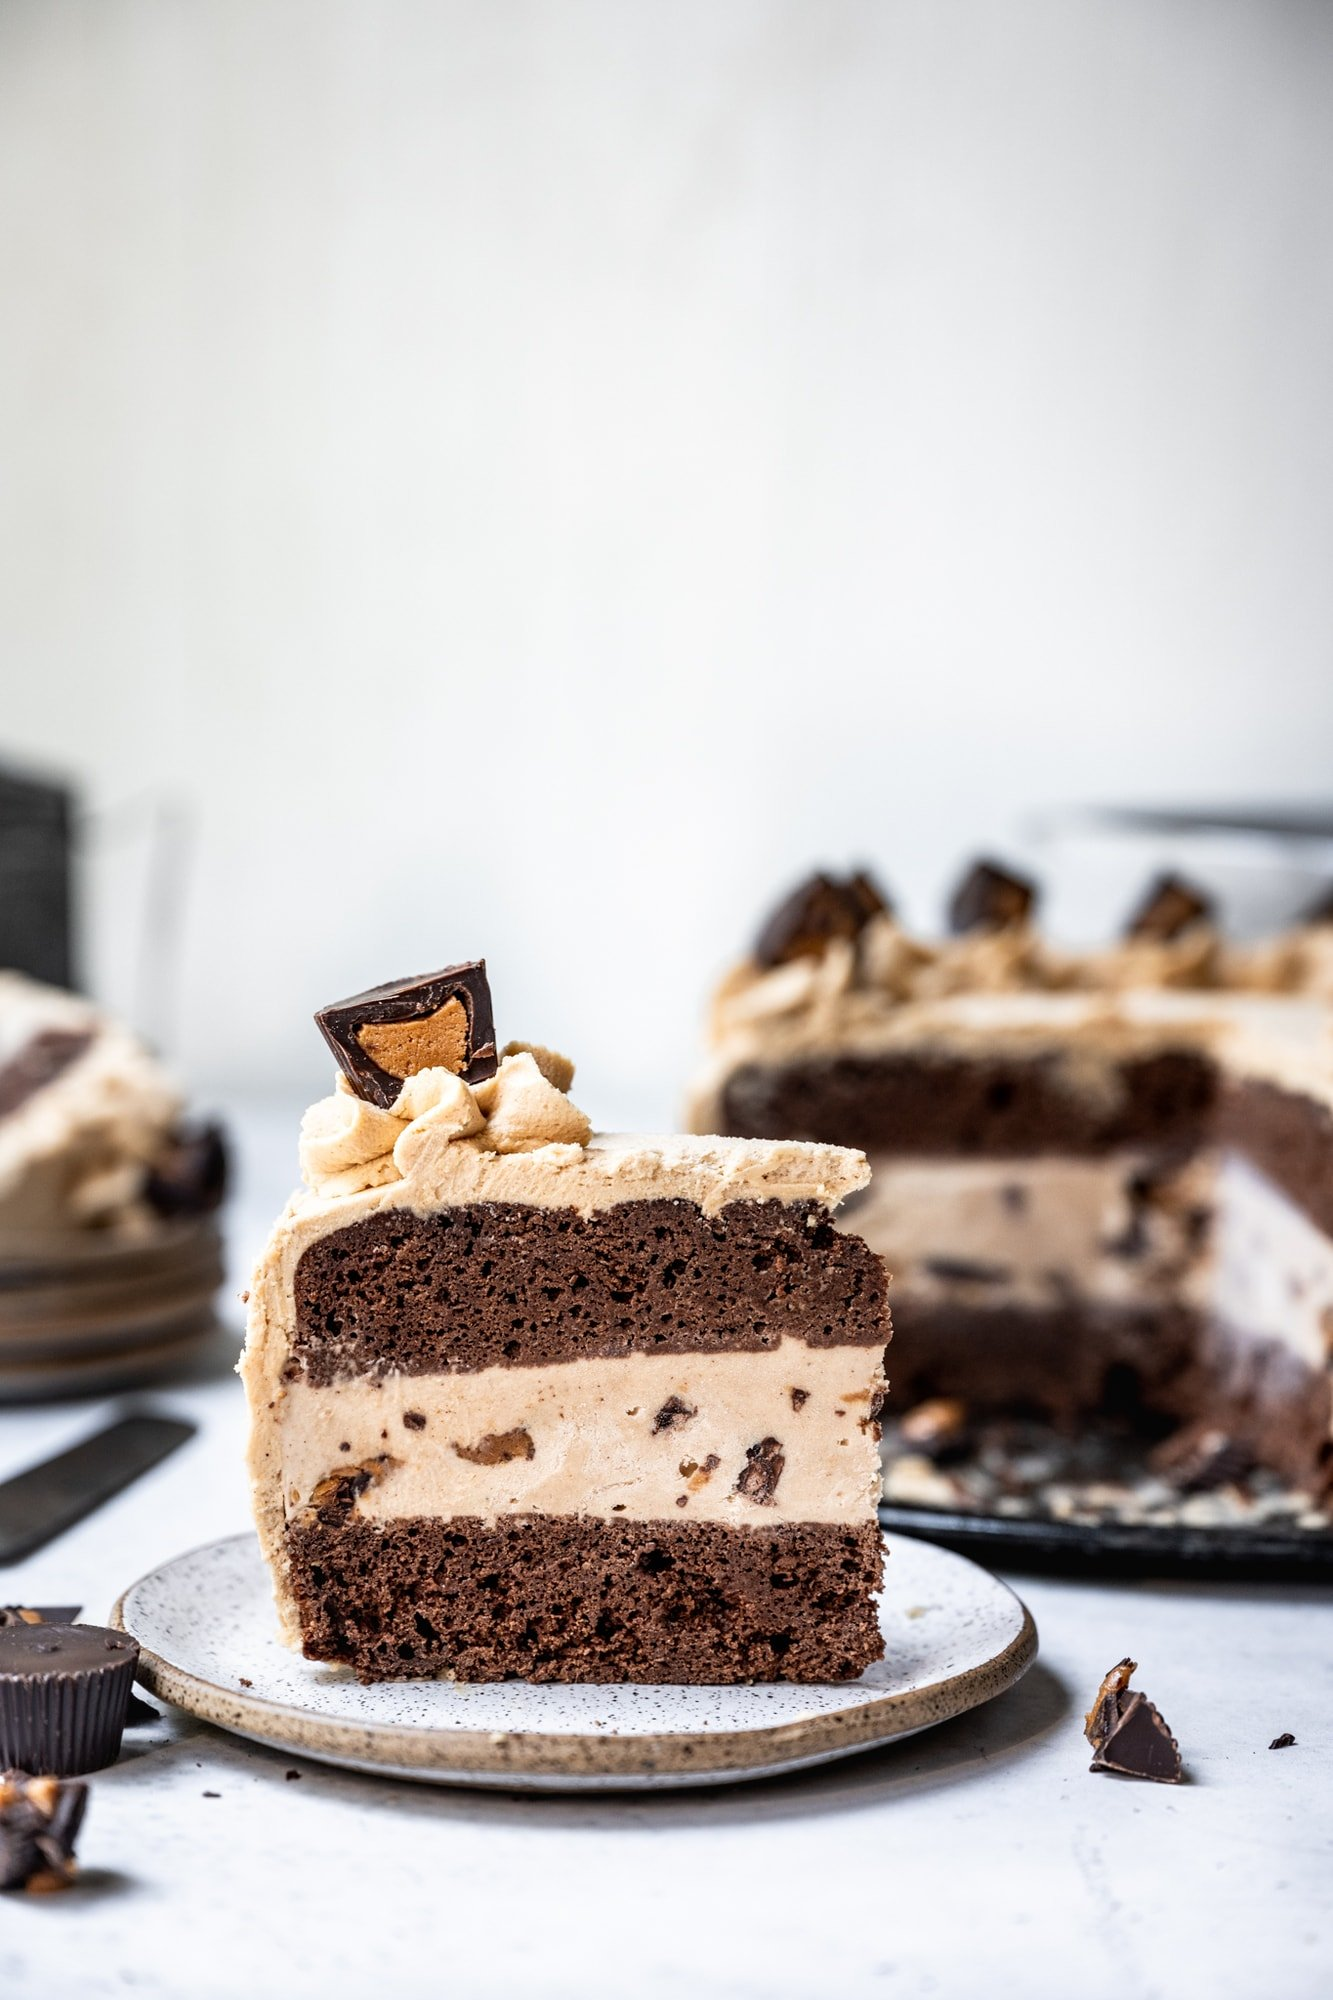 side view of slice of vegan chocolate peanut butter ice cream cake on plate